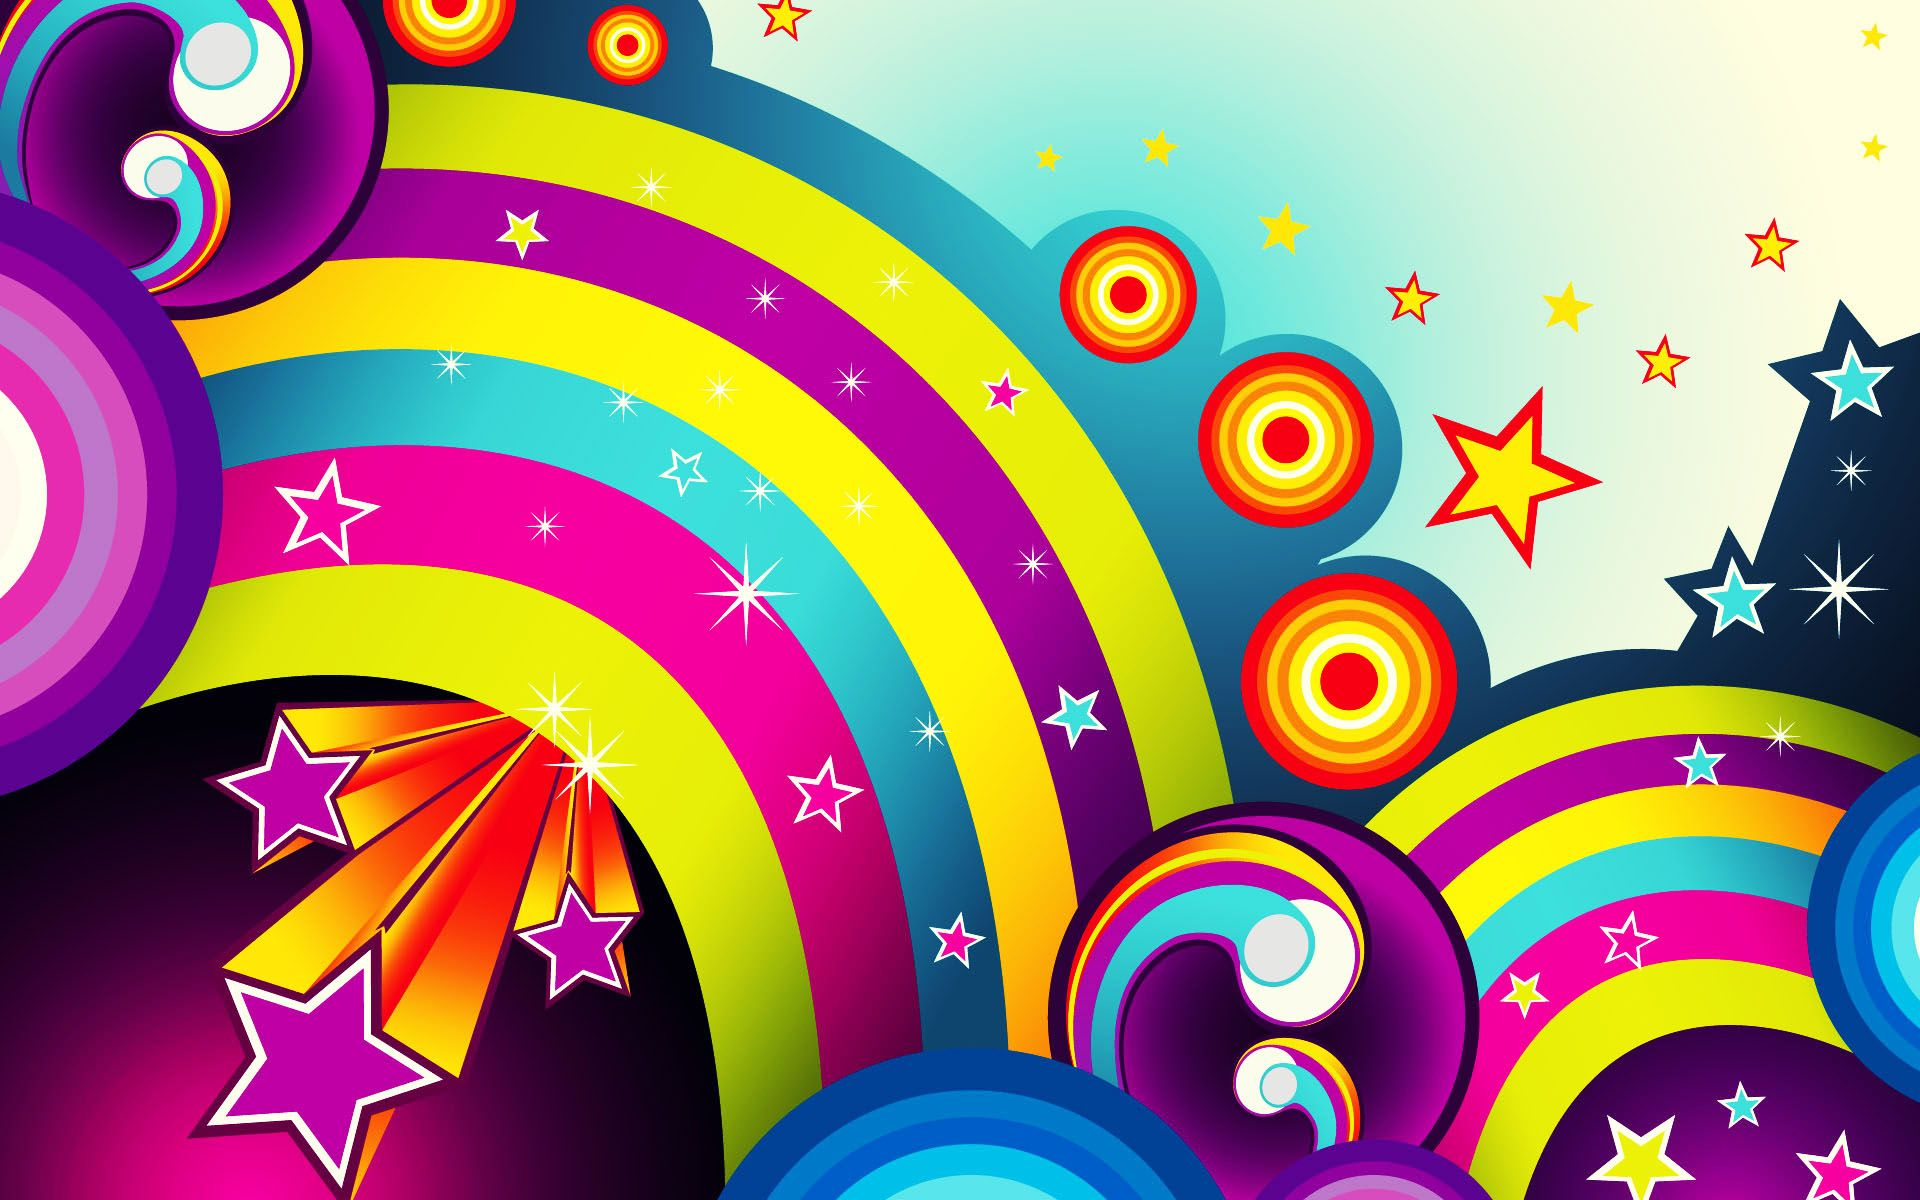 Colorful backgrounds google search ideas for the house for Wallpaper styles and colors